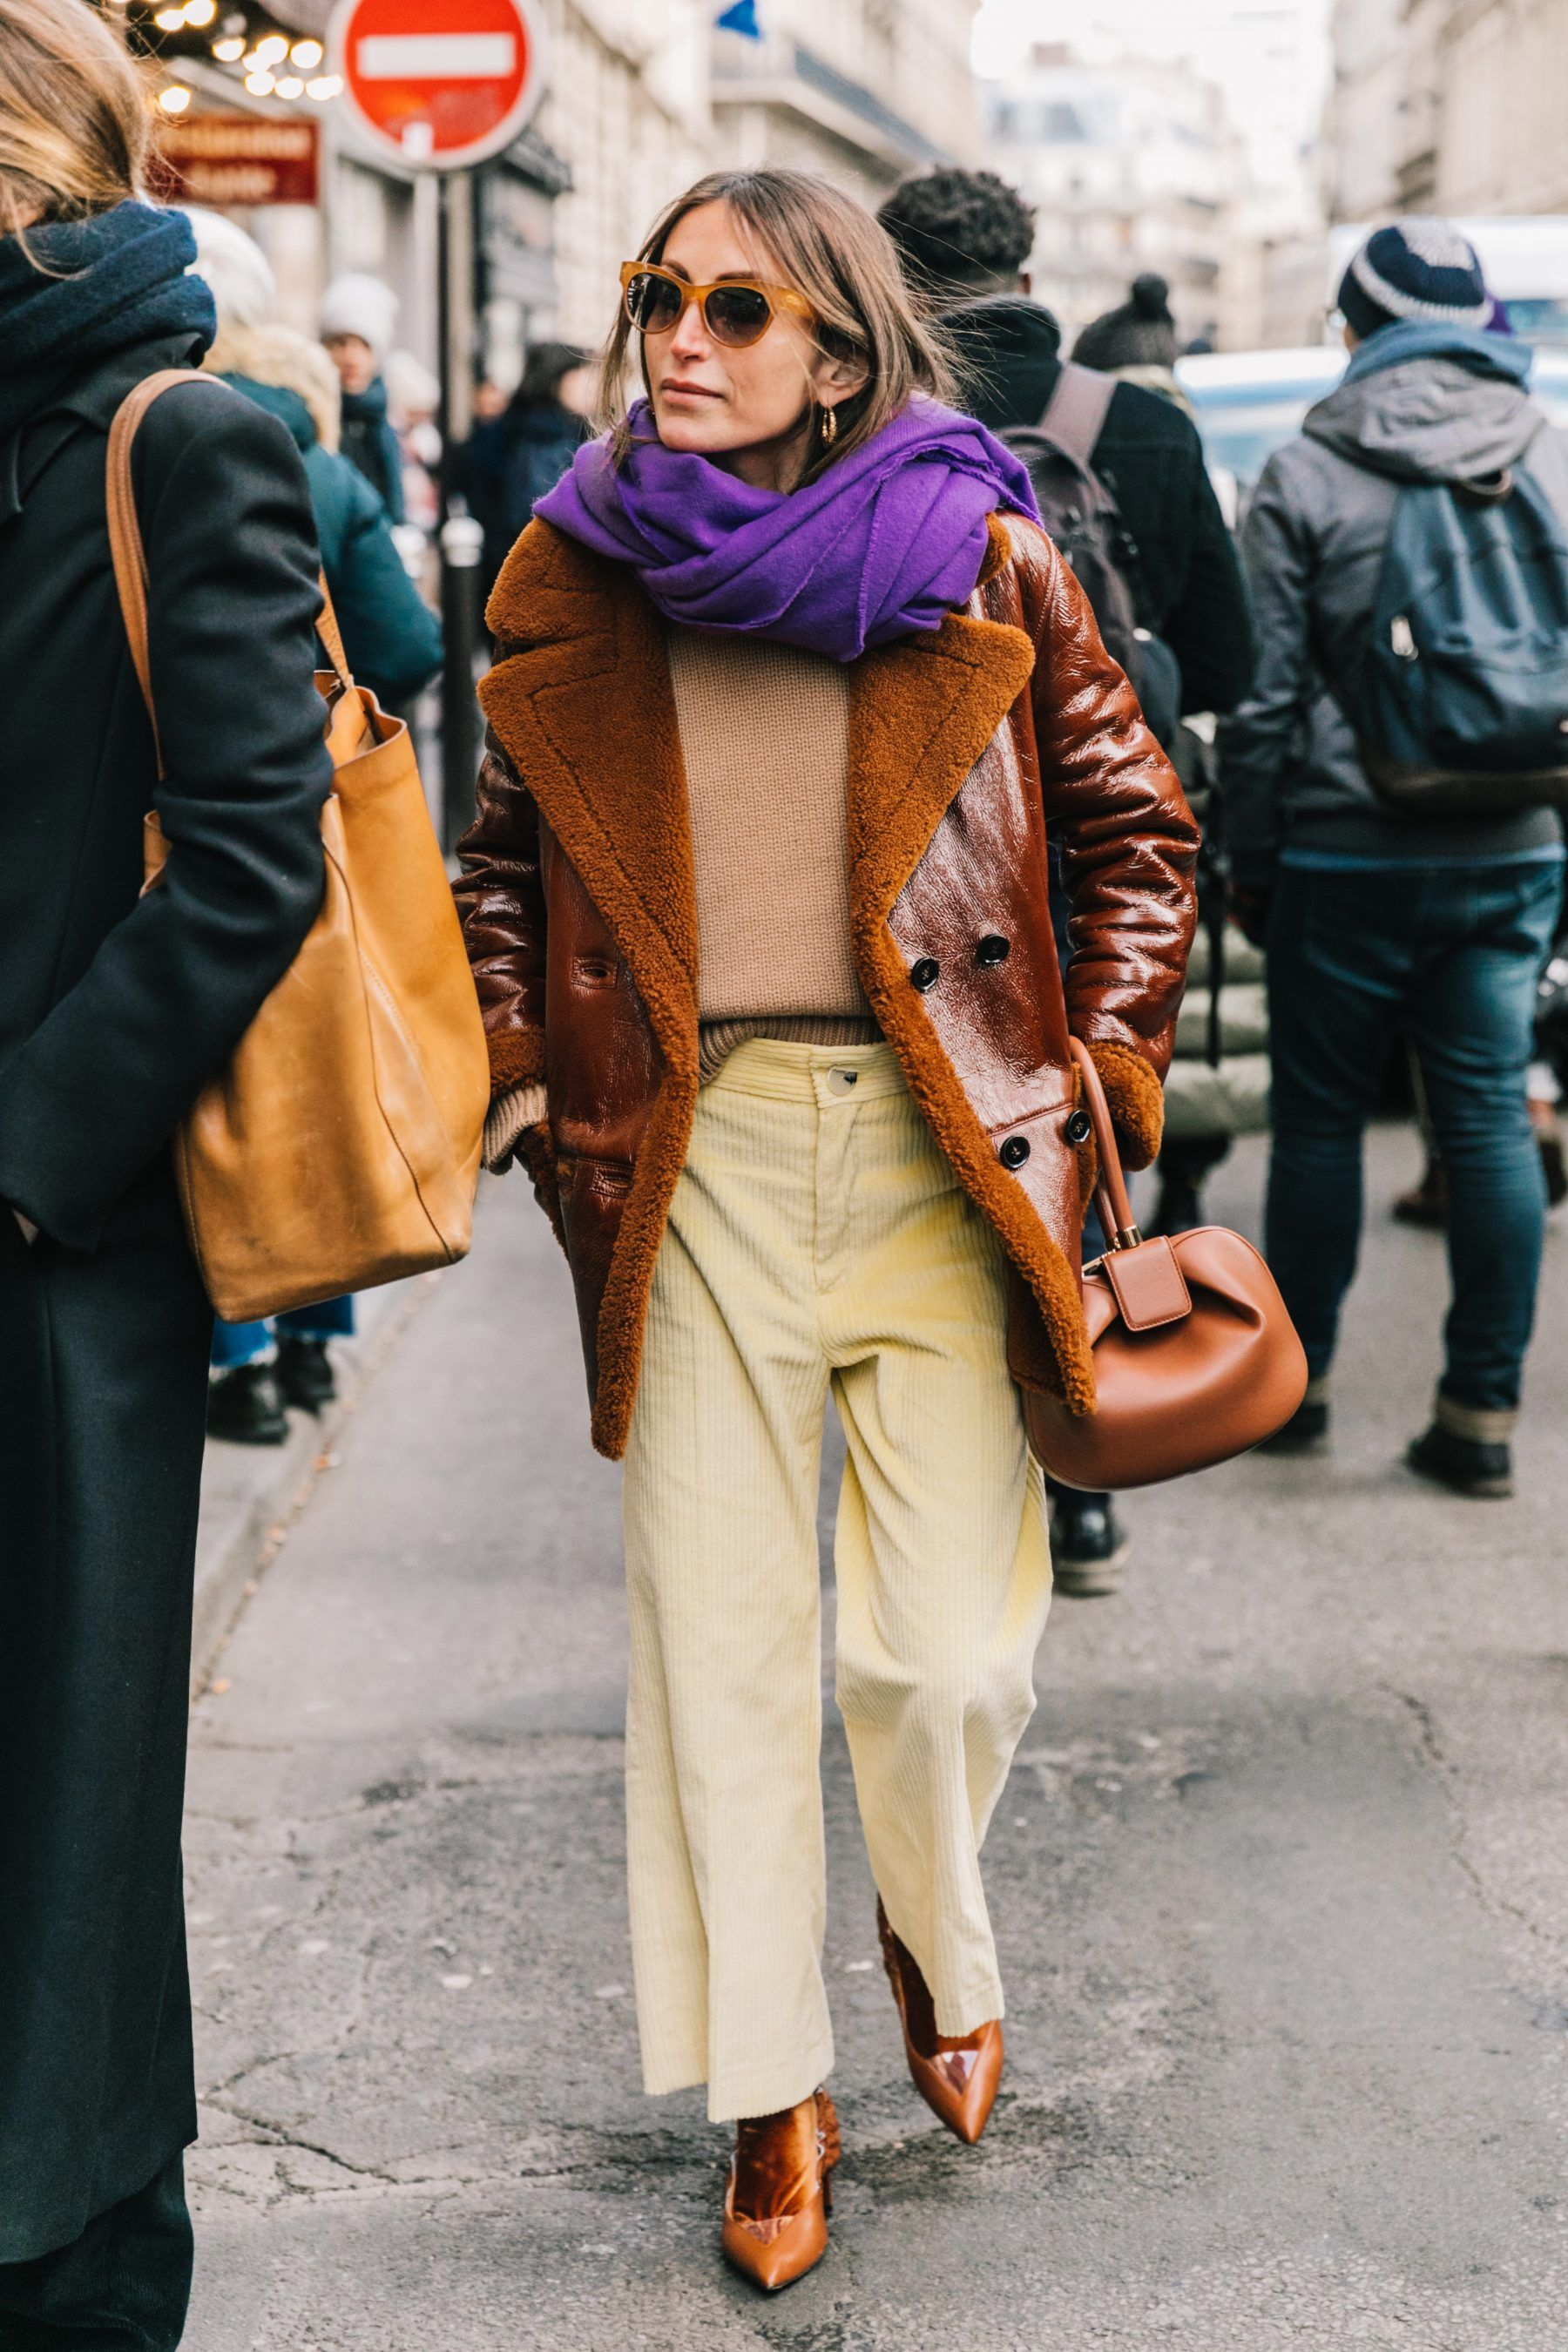 fb85eaa15a PARIS FALL 18 19 STREET STYLE I